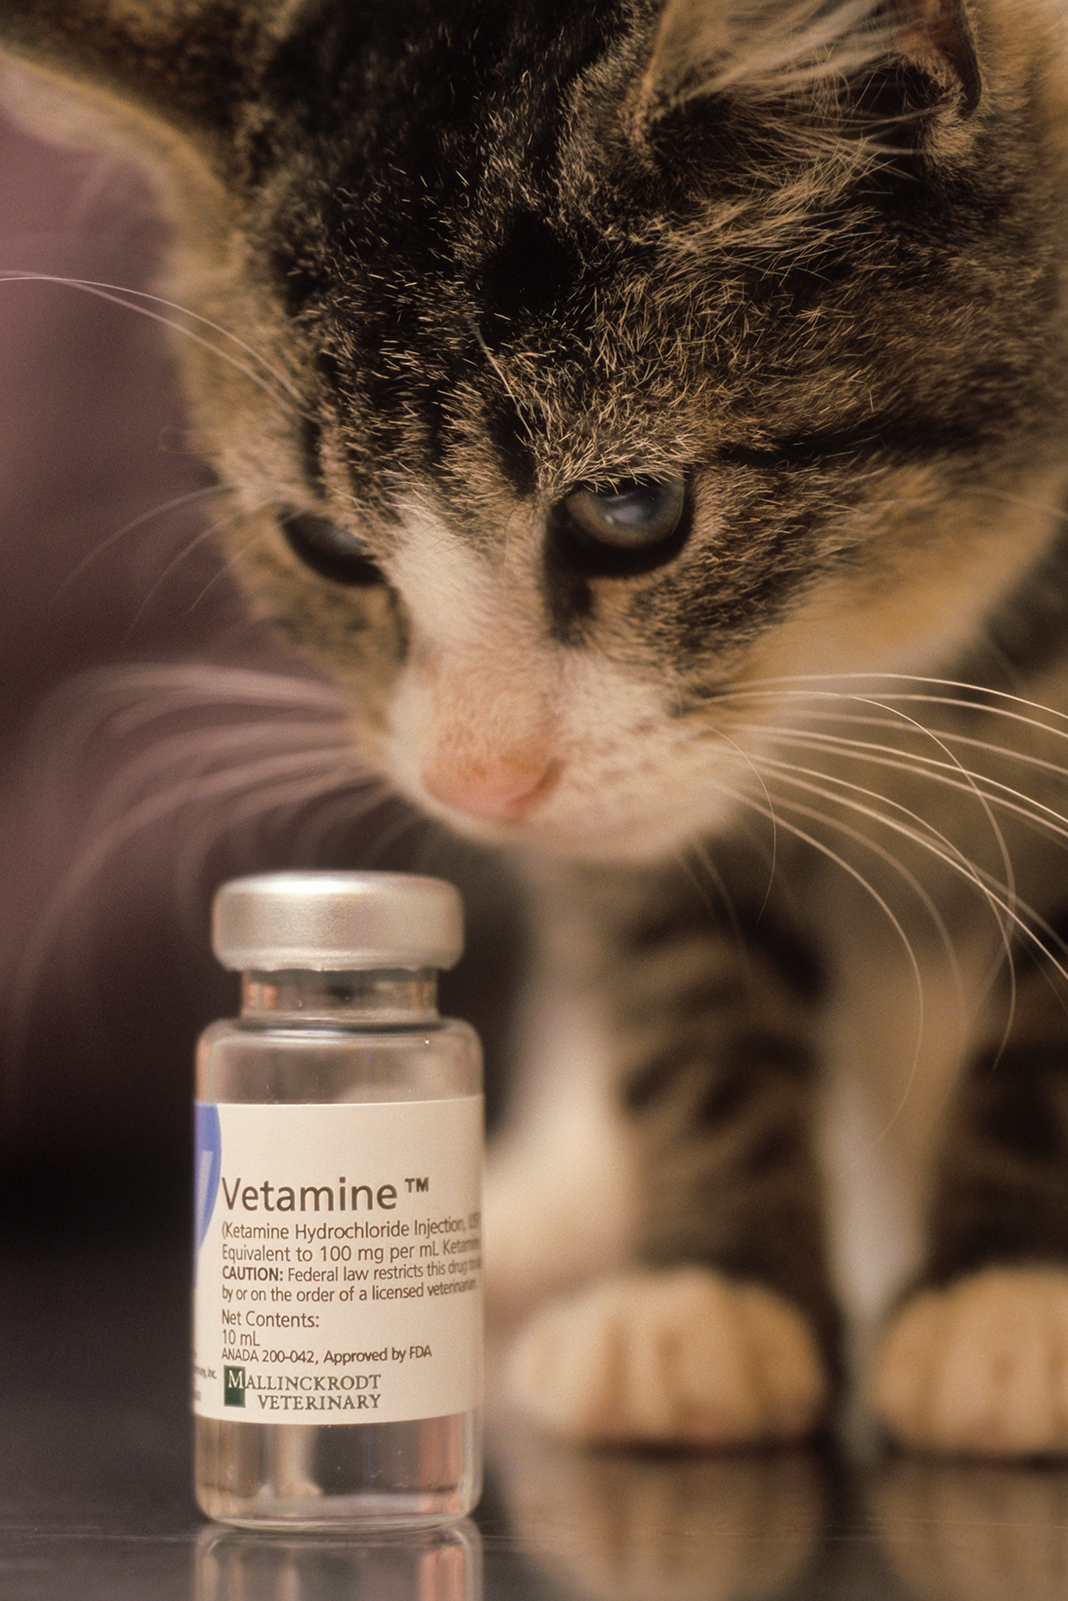 Cat with a vial of injectable drugs